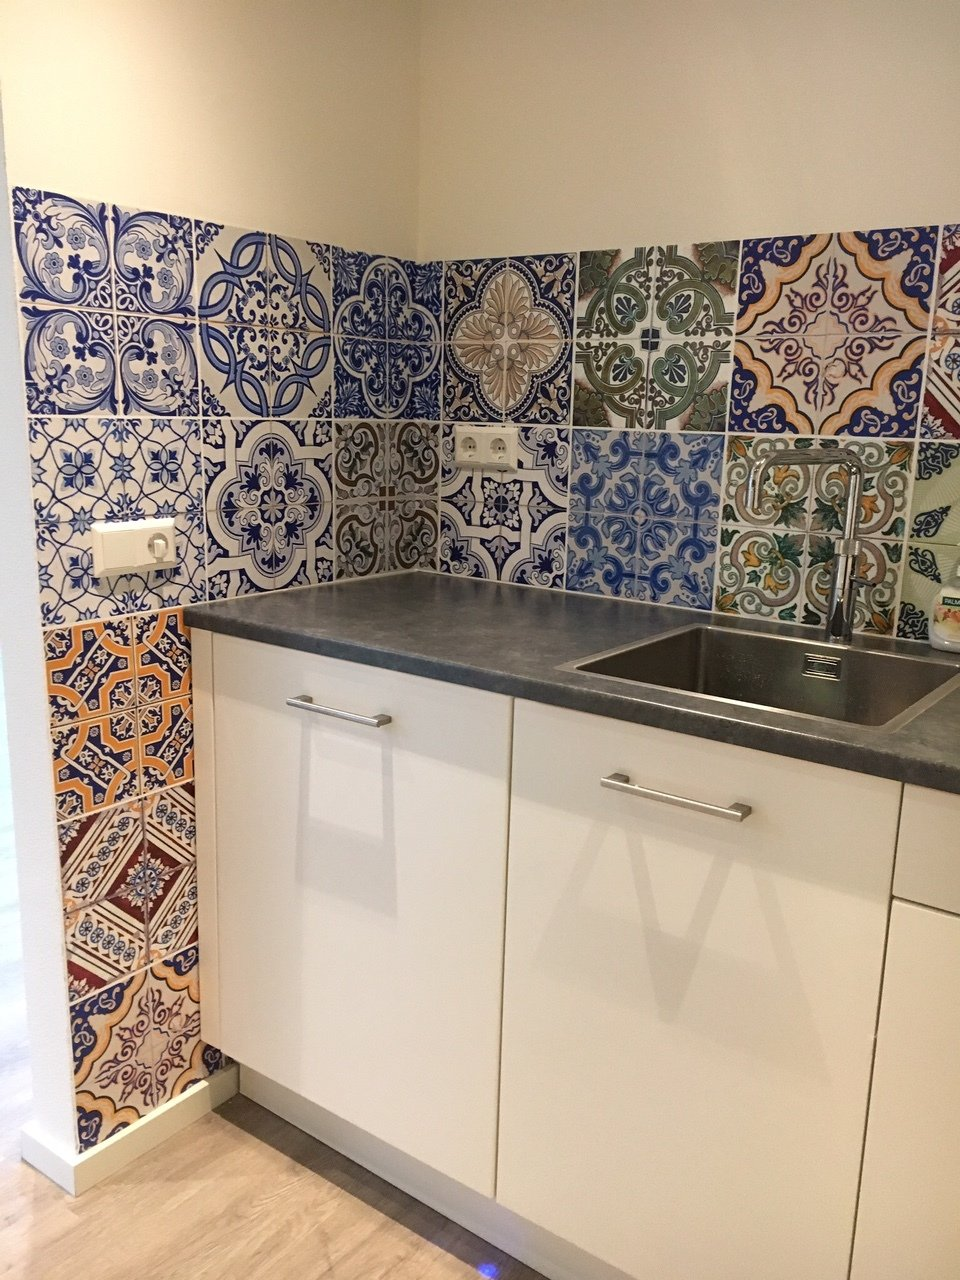 kitchenwalls backsplash wallpaper portugal